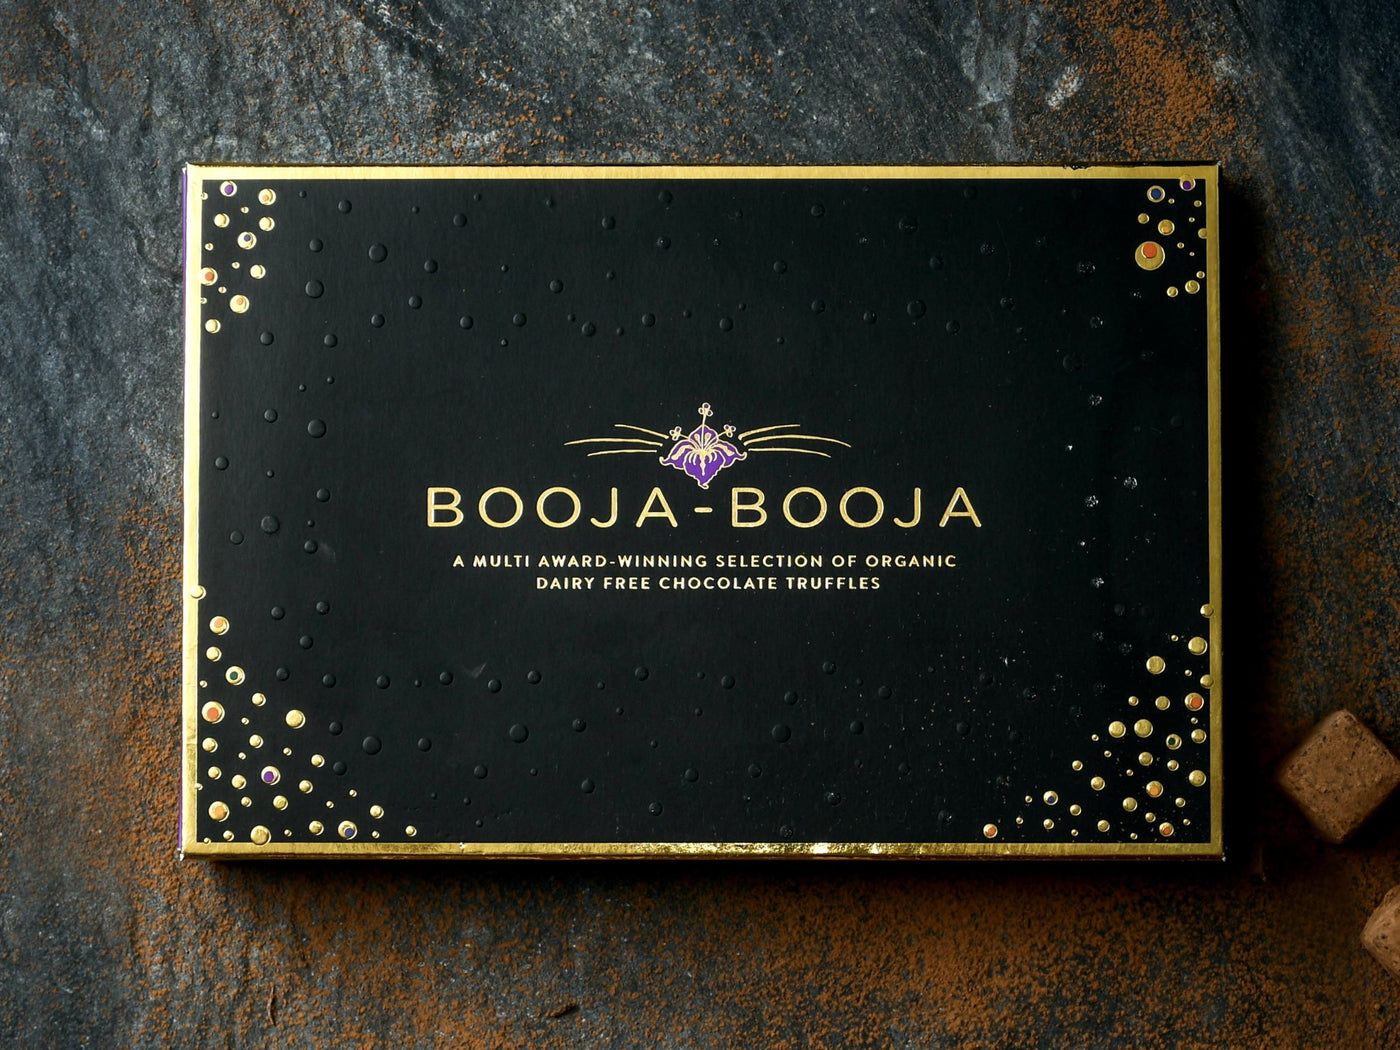 The Booja-Booja Award Winning selection of vegan and organic chocolate truffles, photographed on a slate background with individual chocolate truffles